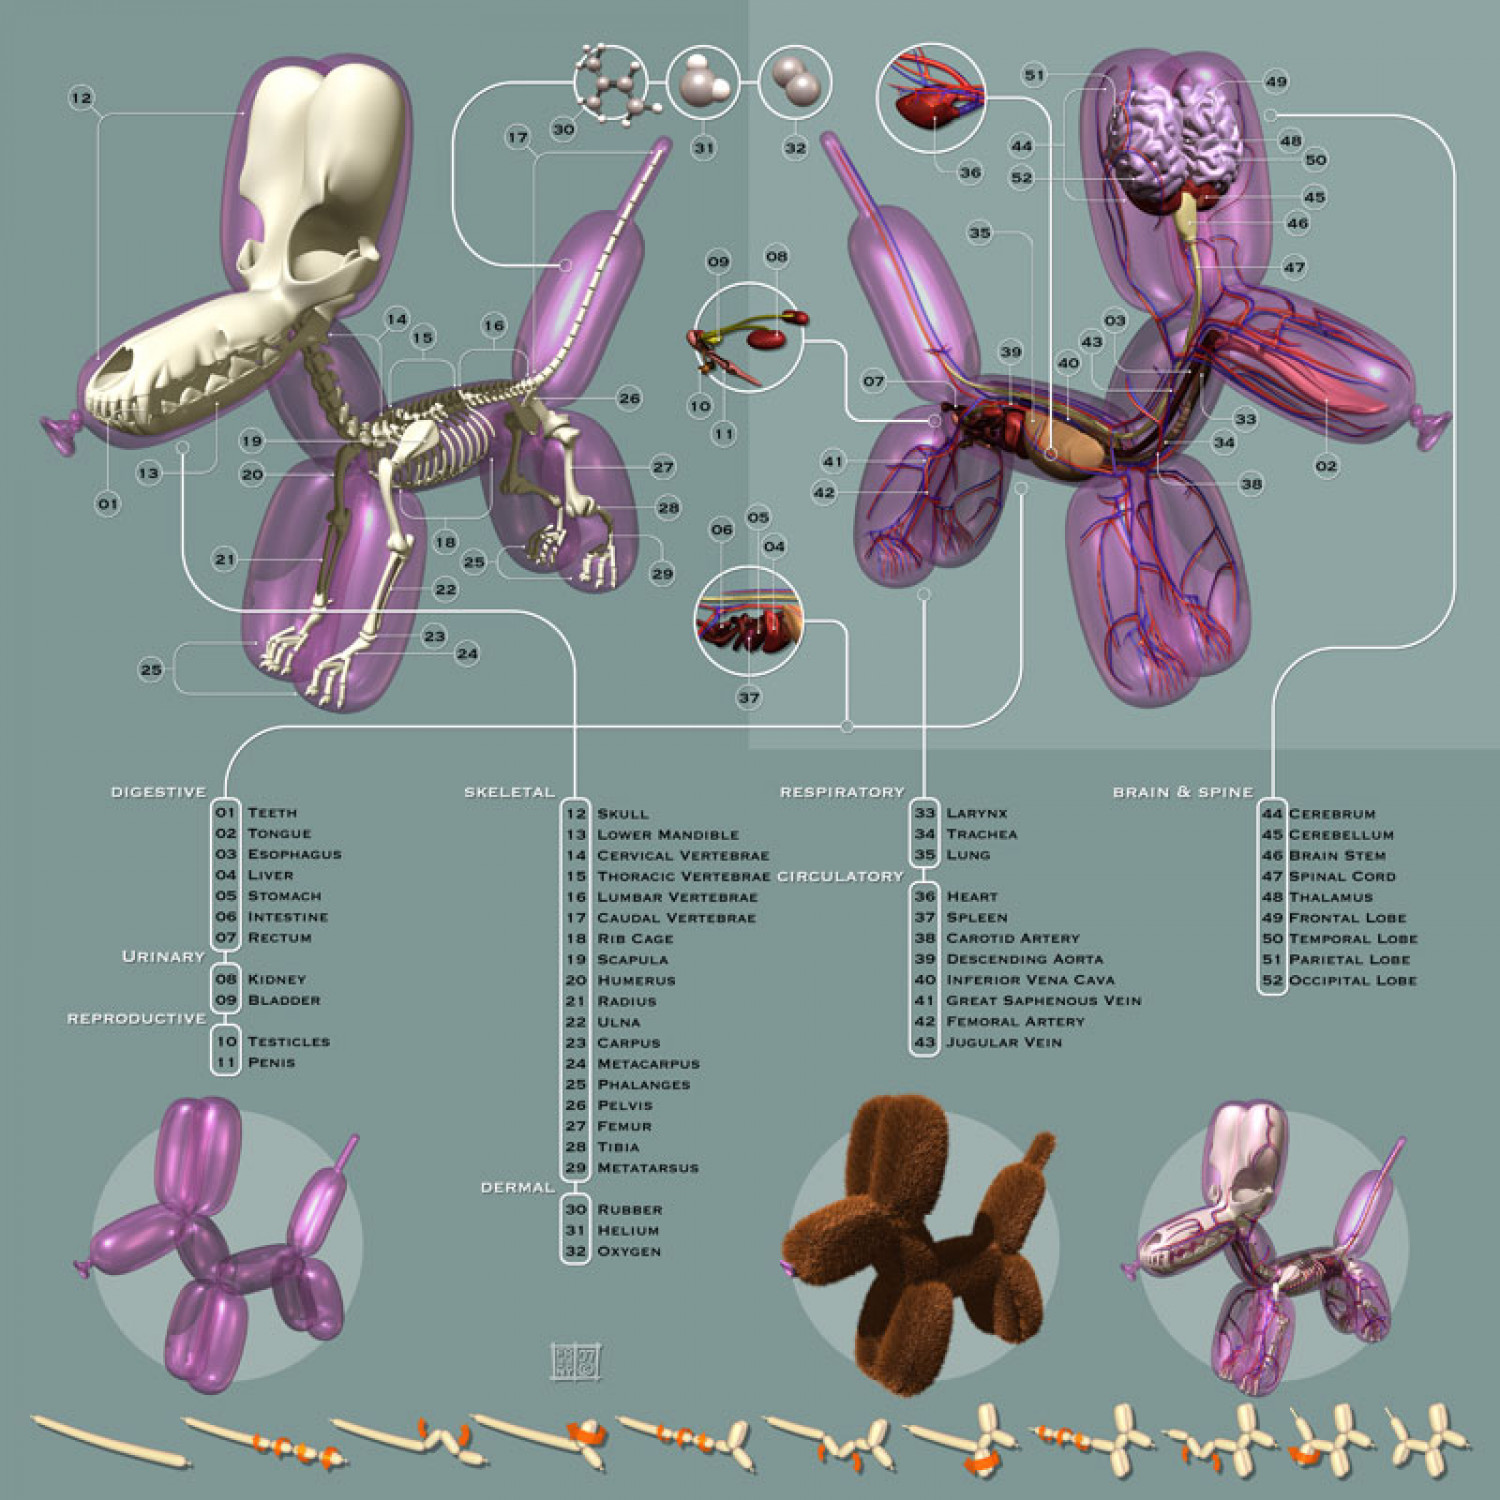 Anatomy of a Balloon Animal Infographic